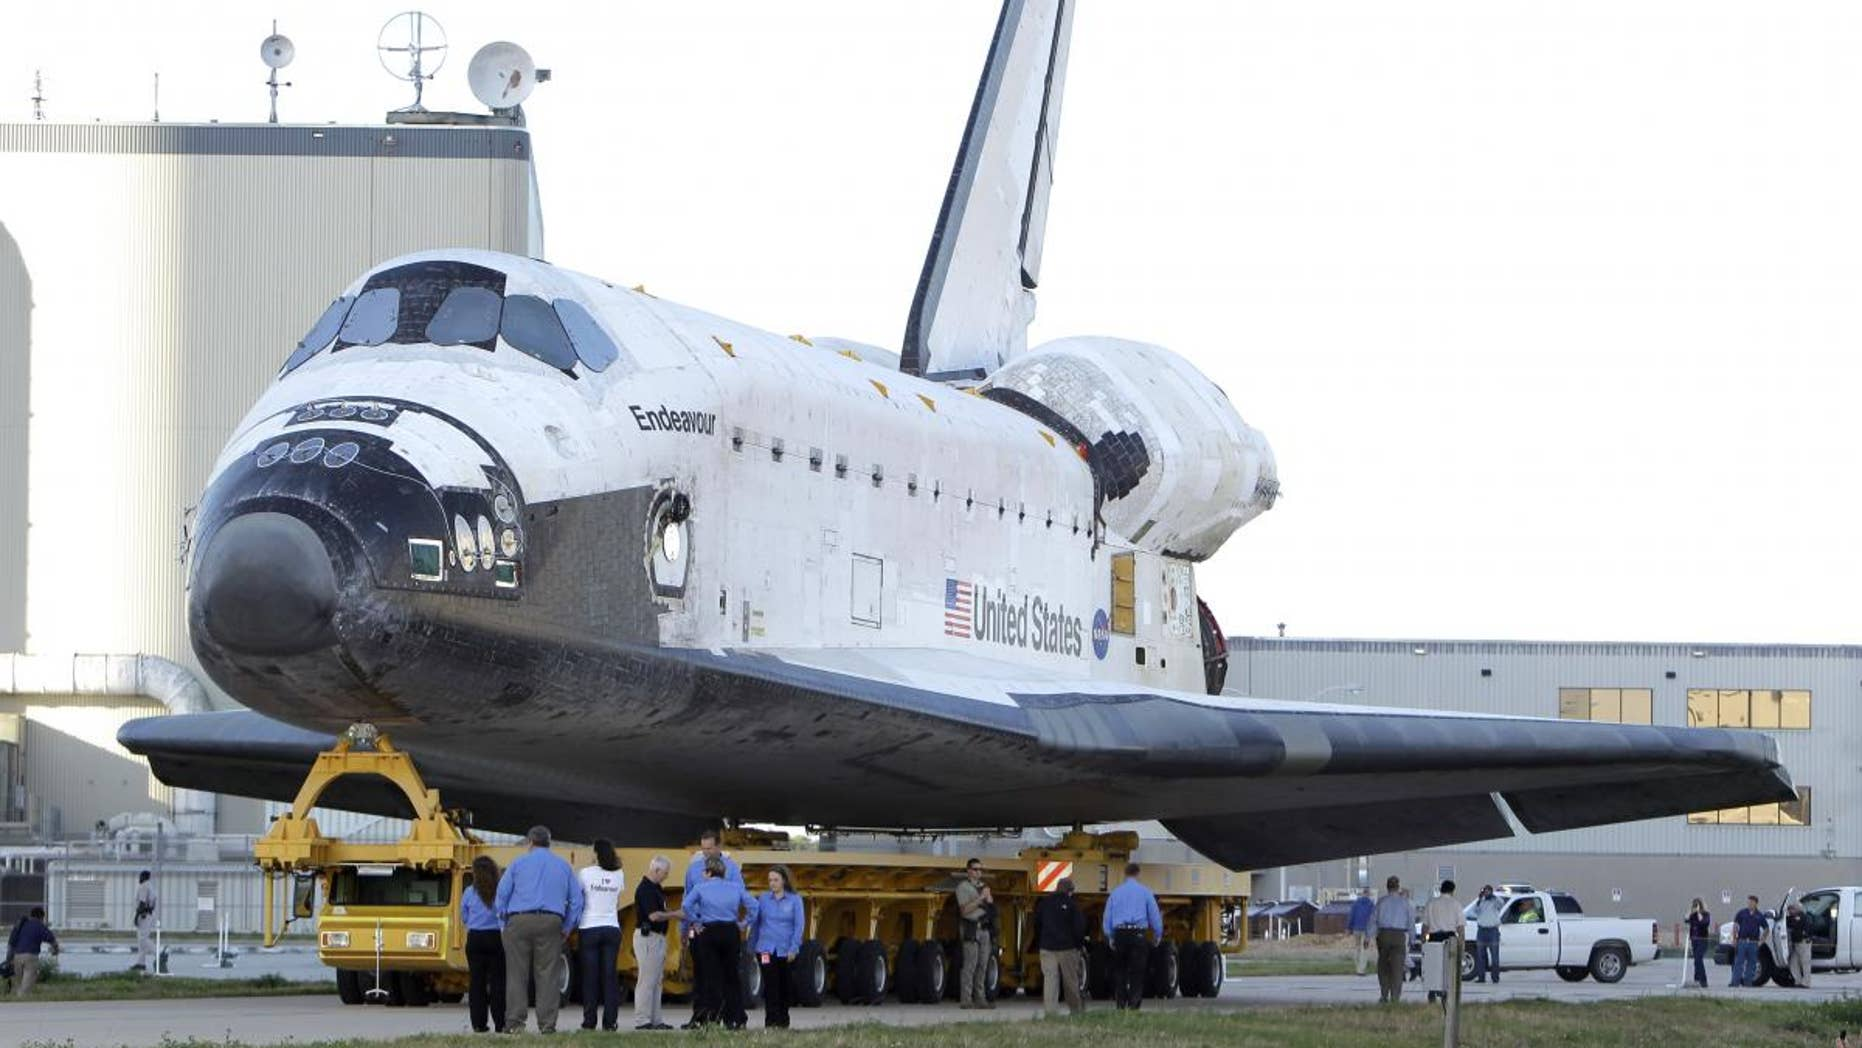 Space shuttle Endeavour is transported from the Orbital Processing Facility to the Vehicle Assembly Building where the orbiter will be connected to the external fuel tank and twin solid rocket boosters at the Kennedy Space Center in Cape Canaveral, Fla., Monday, Feb. 28, 2011. Endeavour is schedule to launch April 19.(AP Photo/John Raoux)